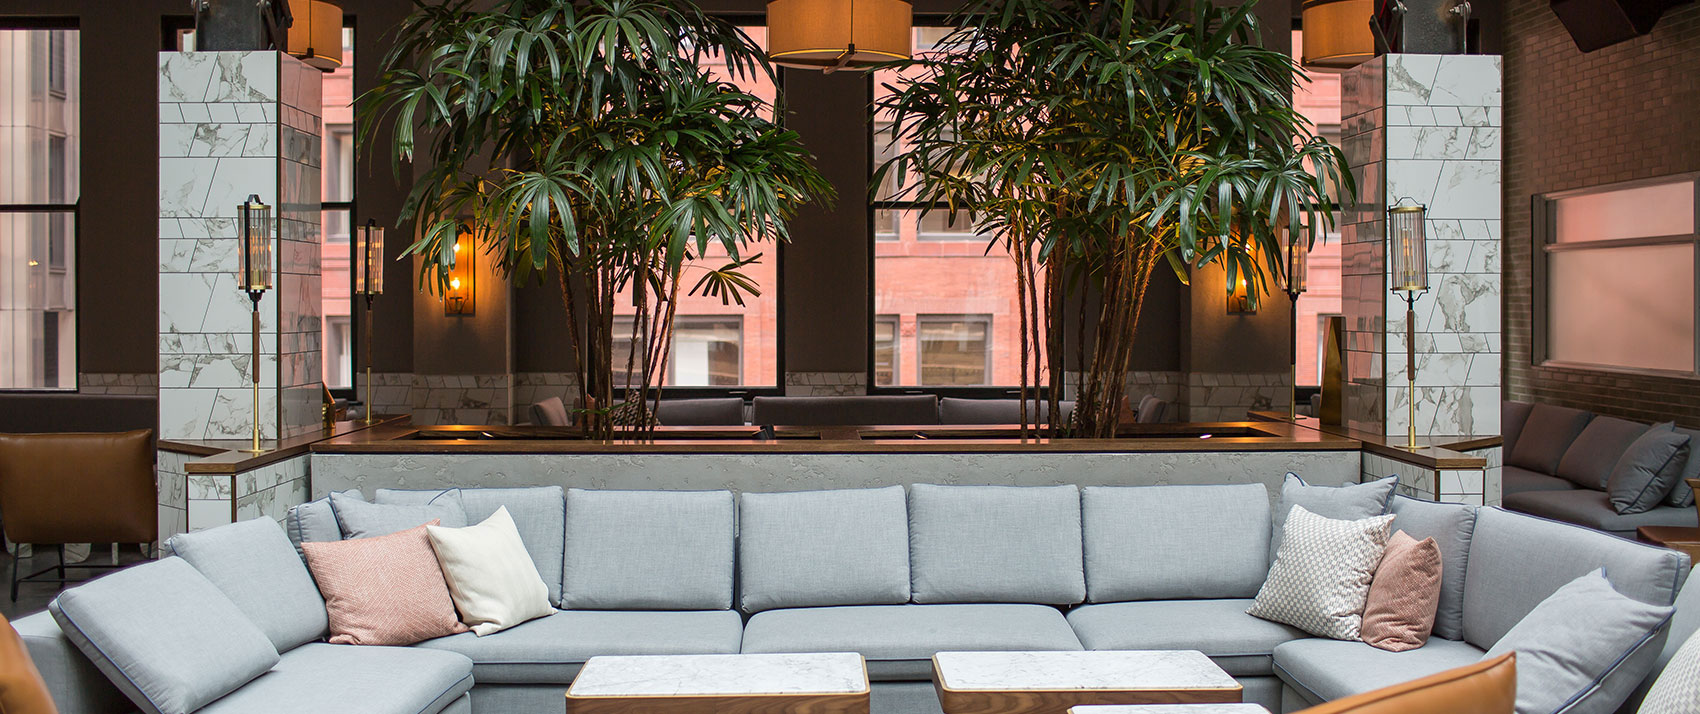 plant,light fixture,pattern, Couch, Rooftop